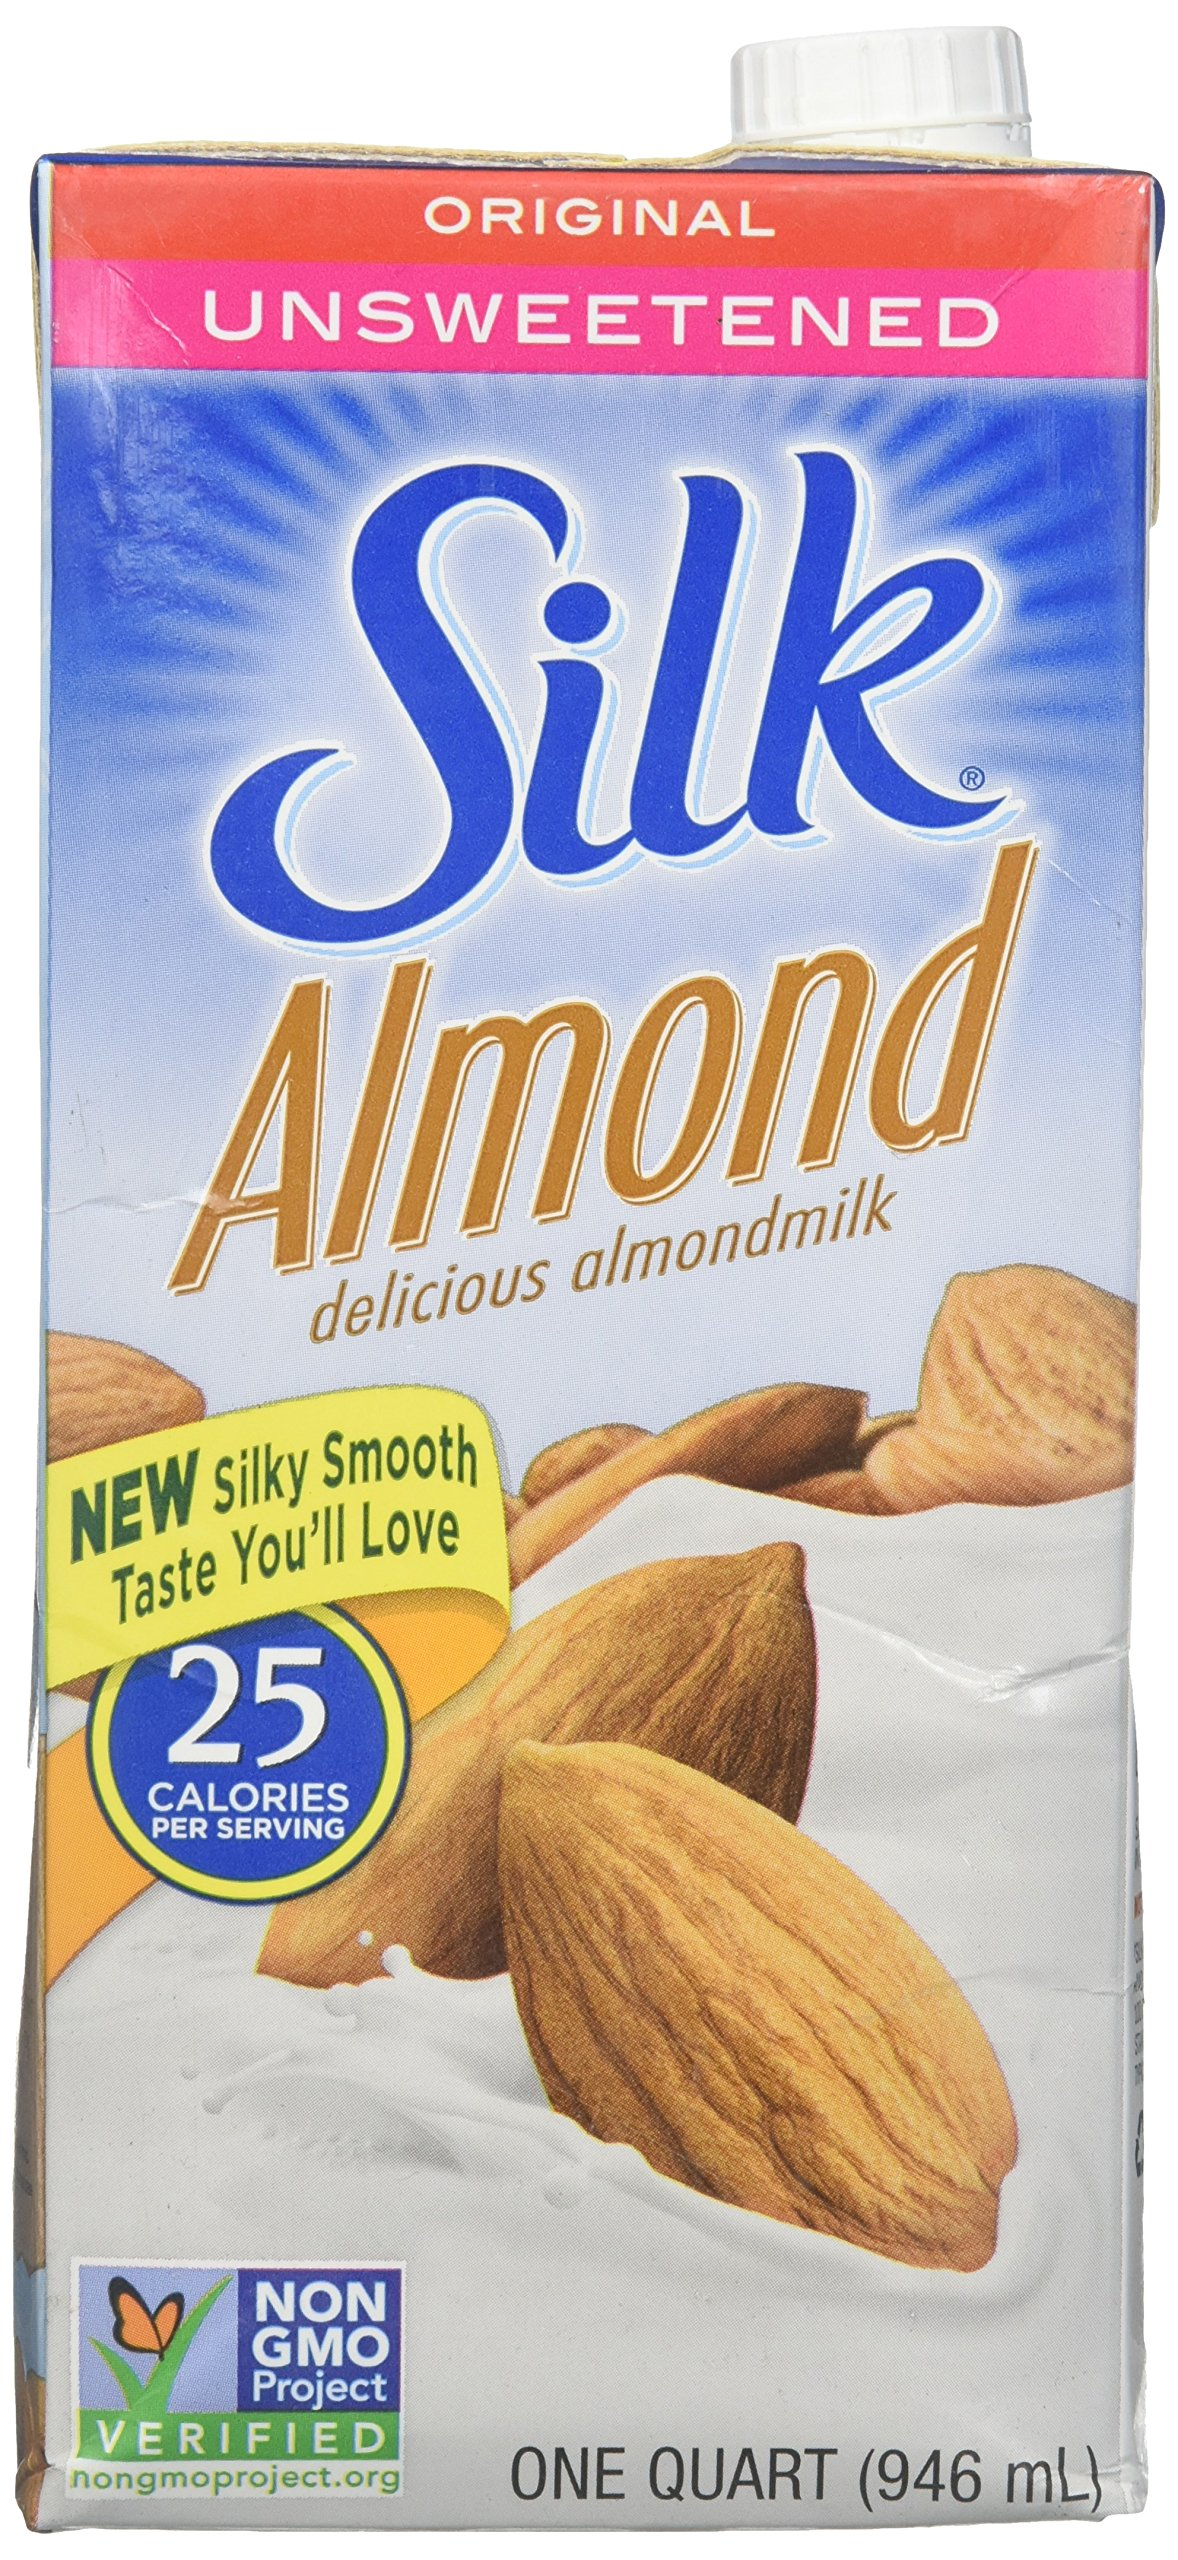 Silk Almond Almondmilk Unsweetened Original